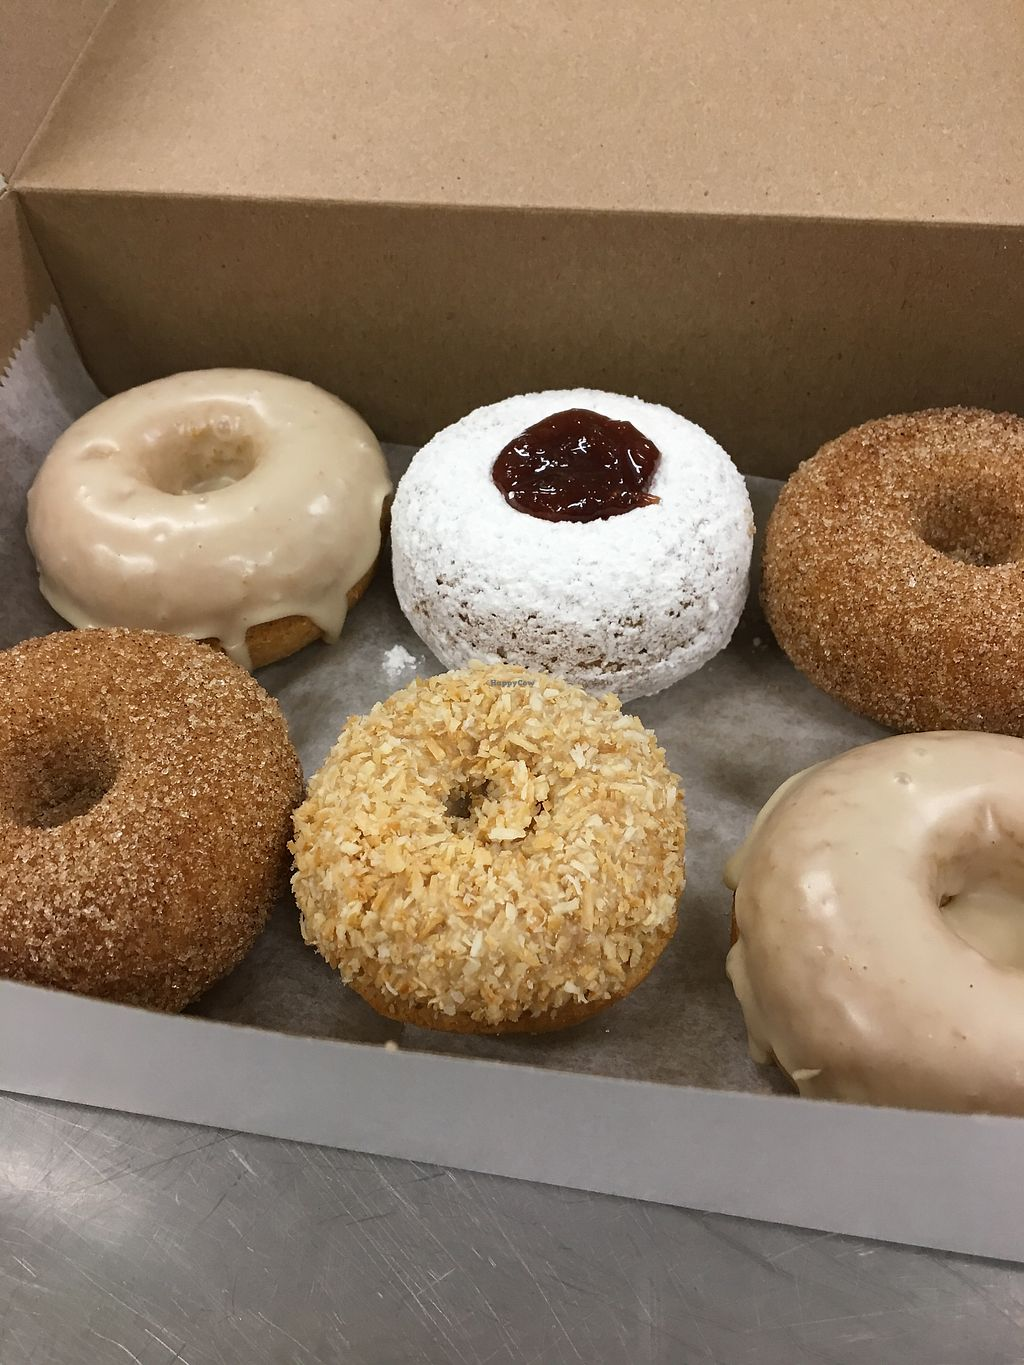 """Photo of The Wooden Spoon Bakery  by <a href=""""/members/profile/Jessica.aziz"""">Jessica.aziz</a> <br/>assorted vegan gf donuts  <br/> July 2, 2017  - <a href='/contact/abuse/image/94470/275806'>Report</a>"""